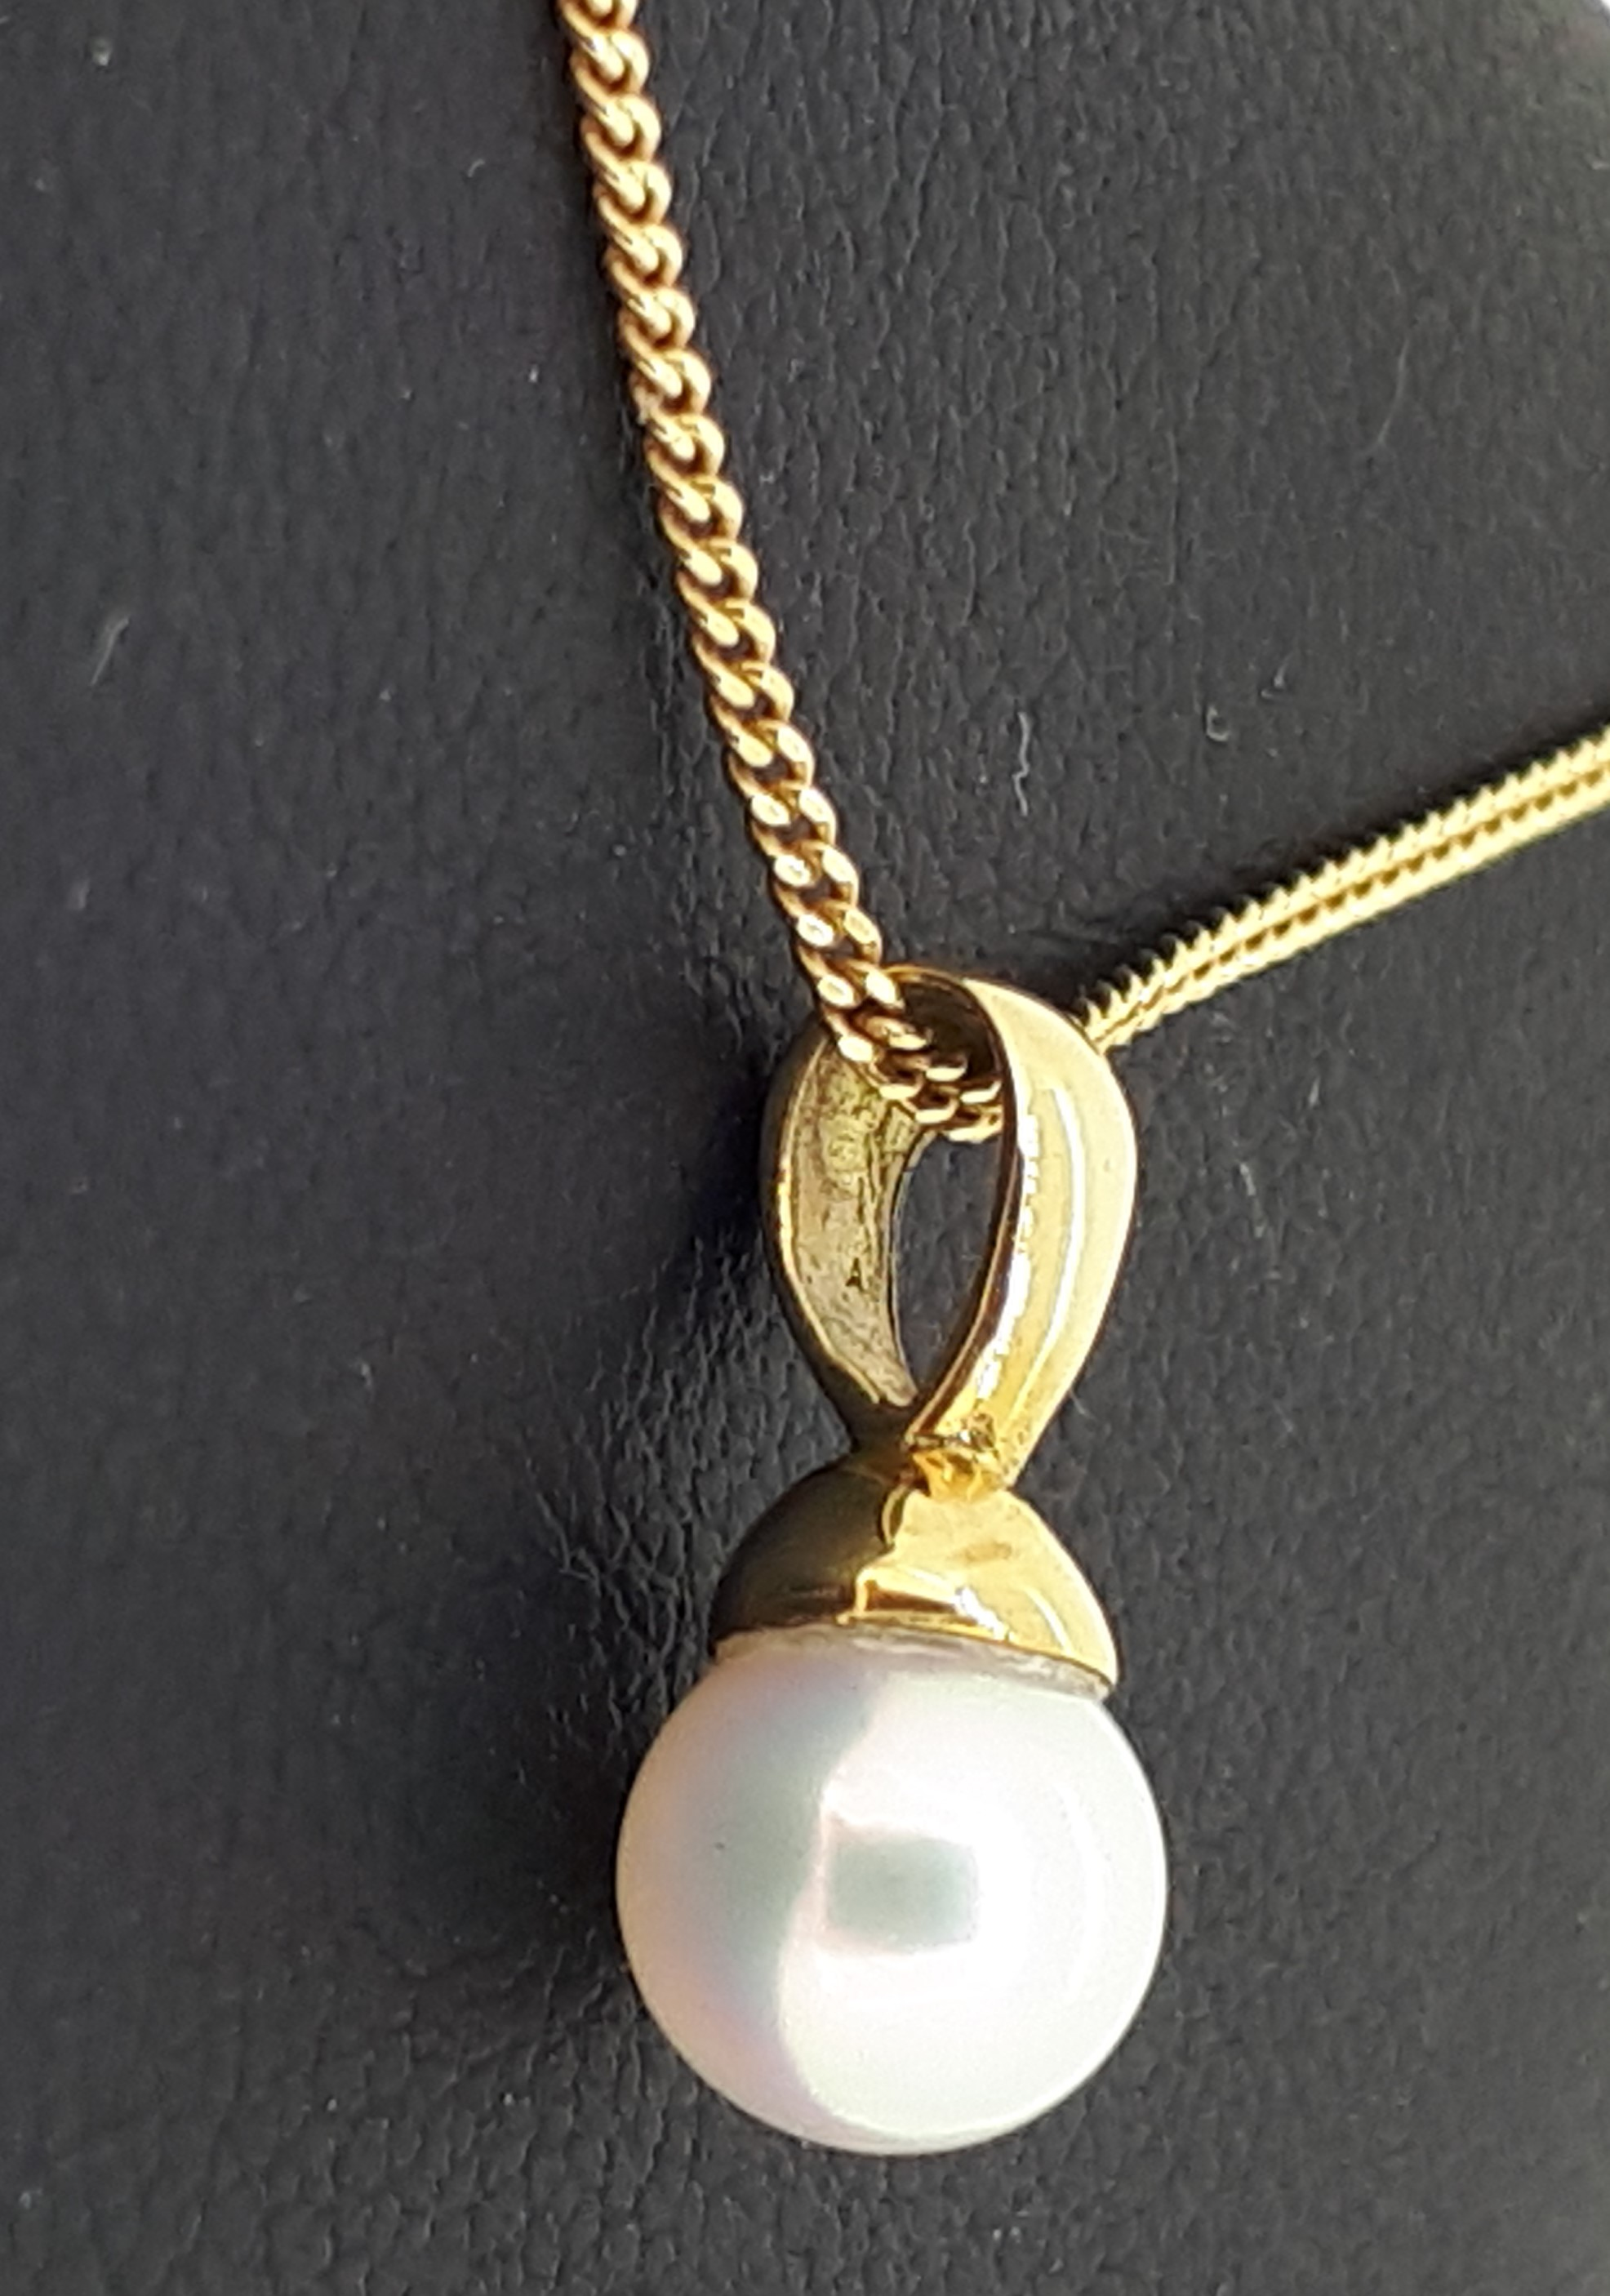 18ct (750) Yellow Gold 5.5-6mm Pearl Pendant on 18ct Yellow Gold Curb Chain - Image 4 of 4